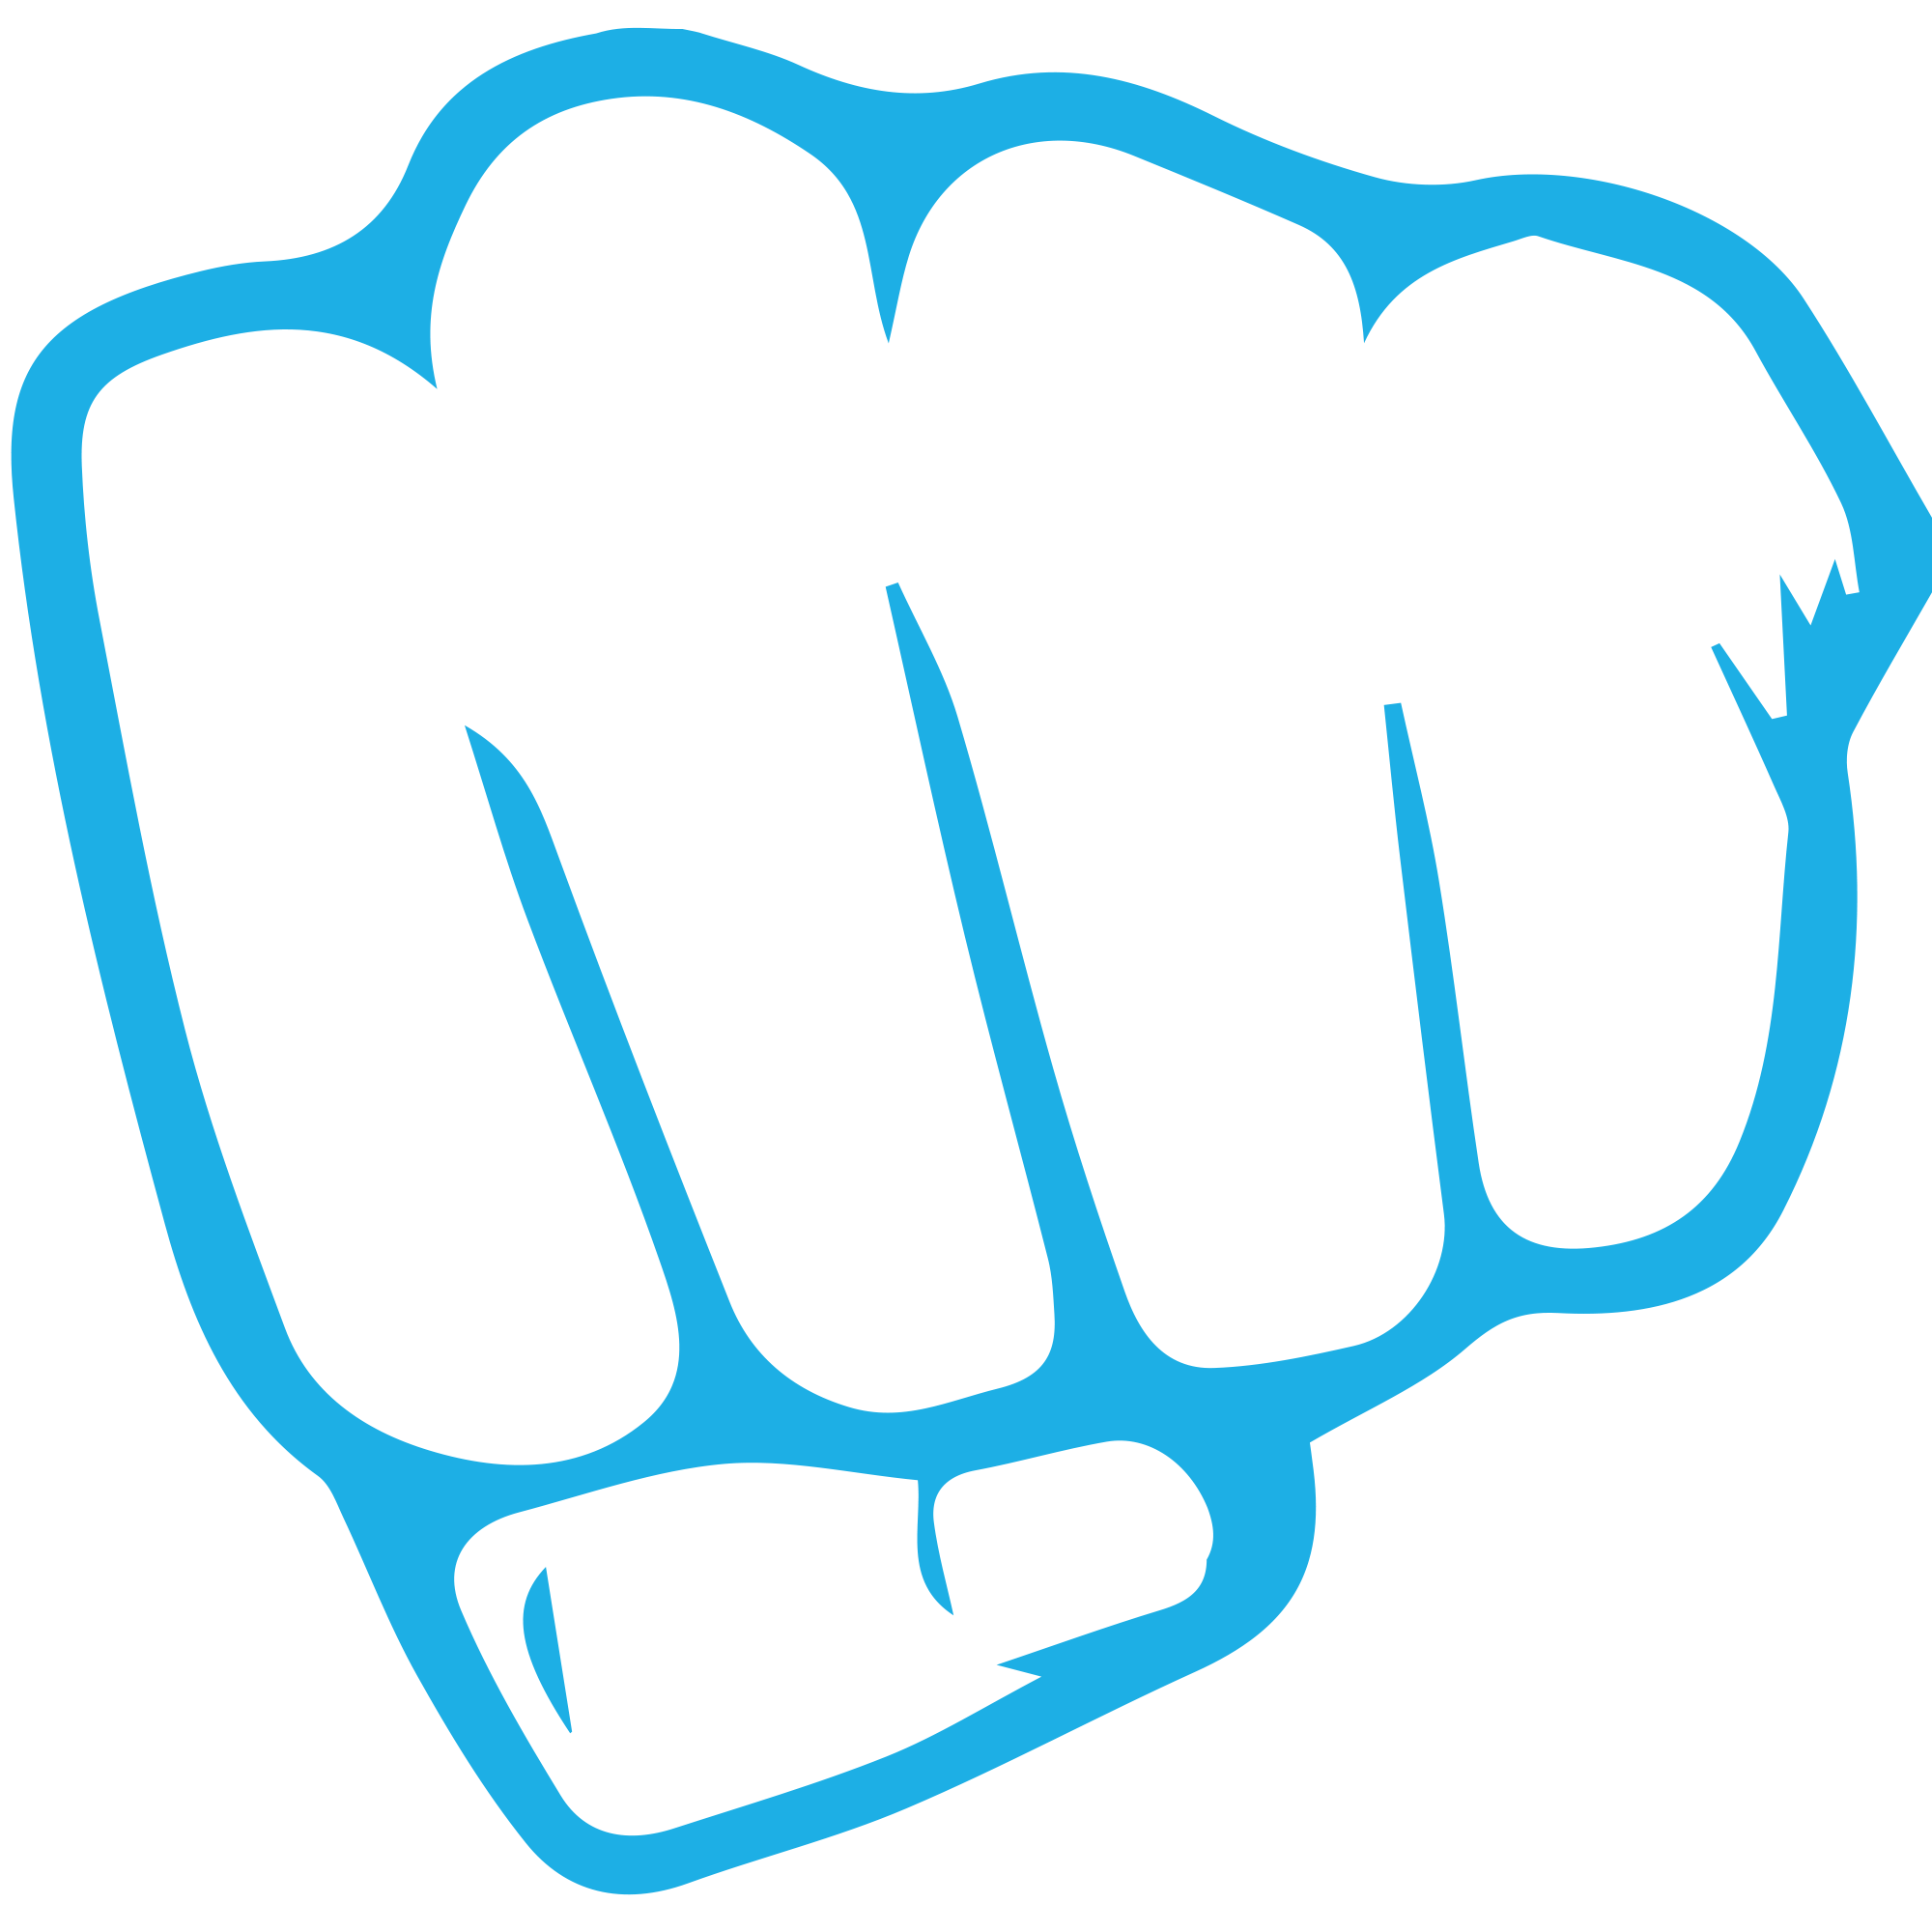 Fist clipart hitting Index /images/press/brand/original of fist only